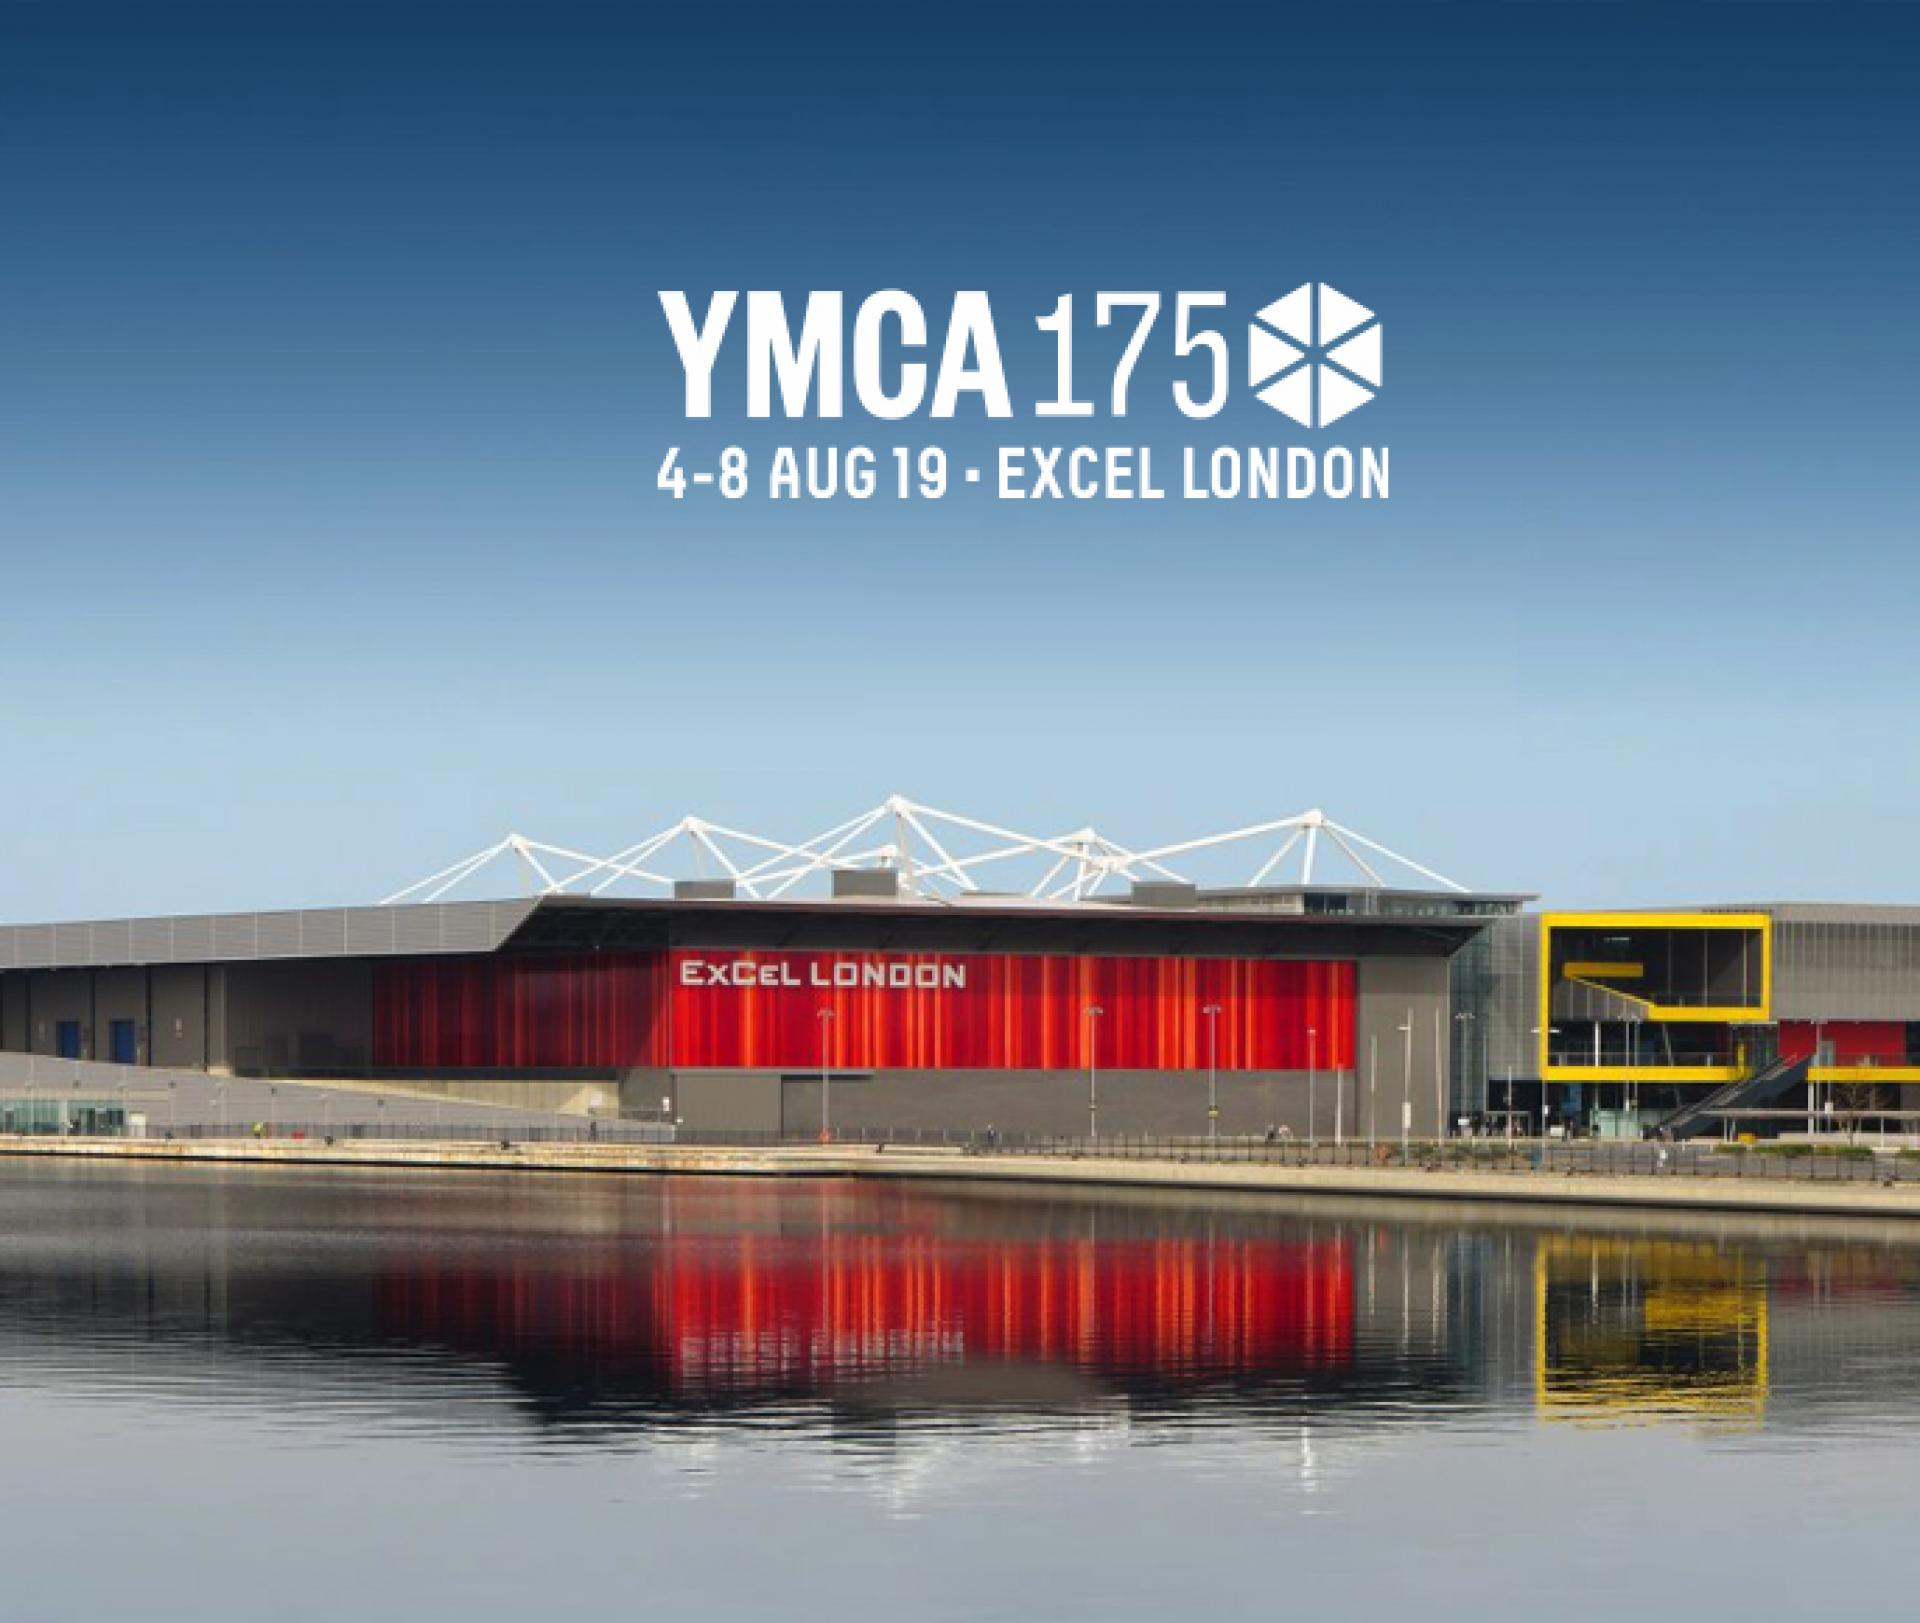 YMCA175 Jubliäumsfeier in London